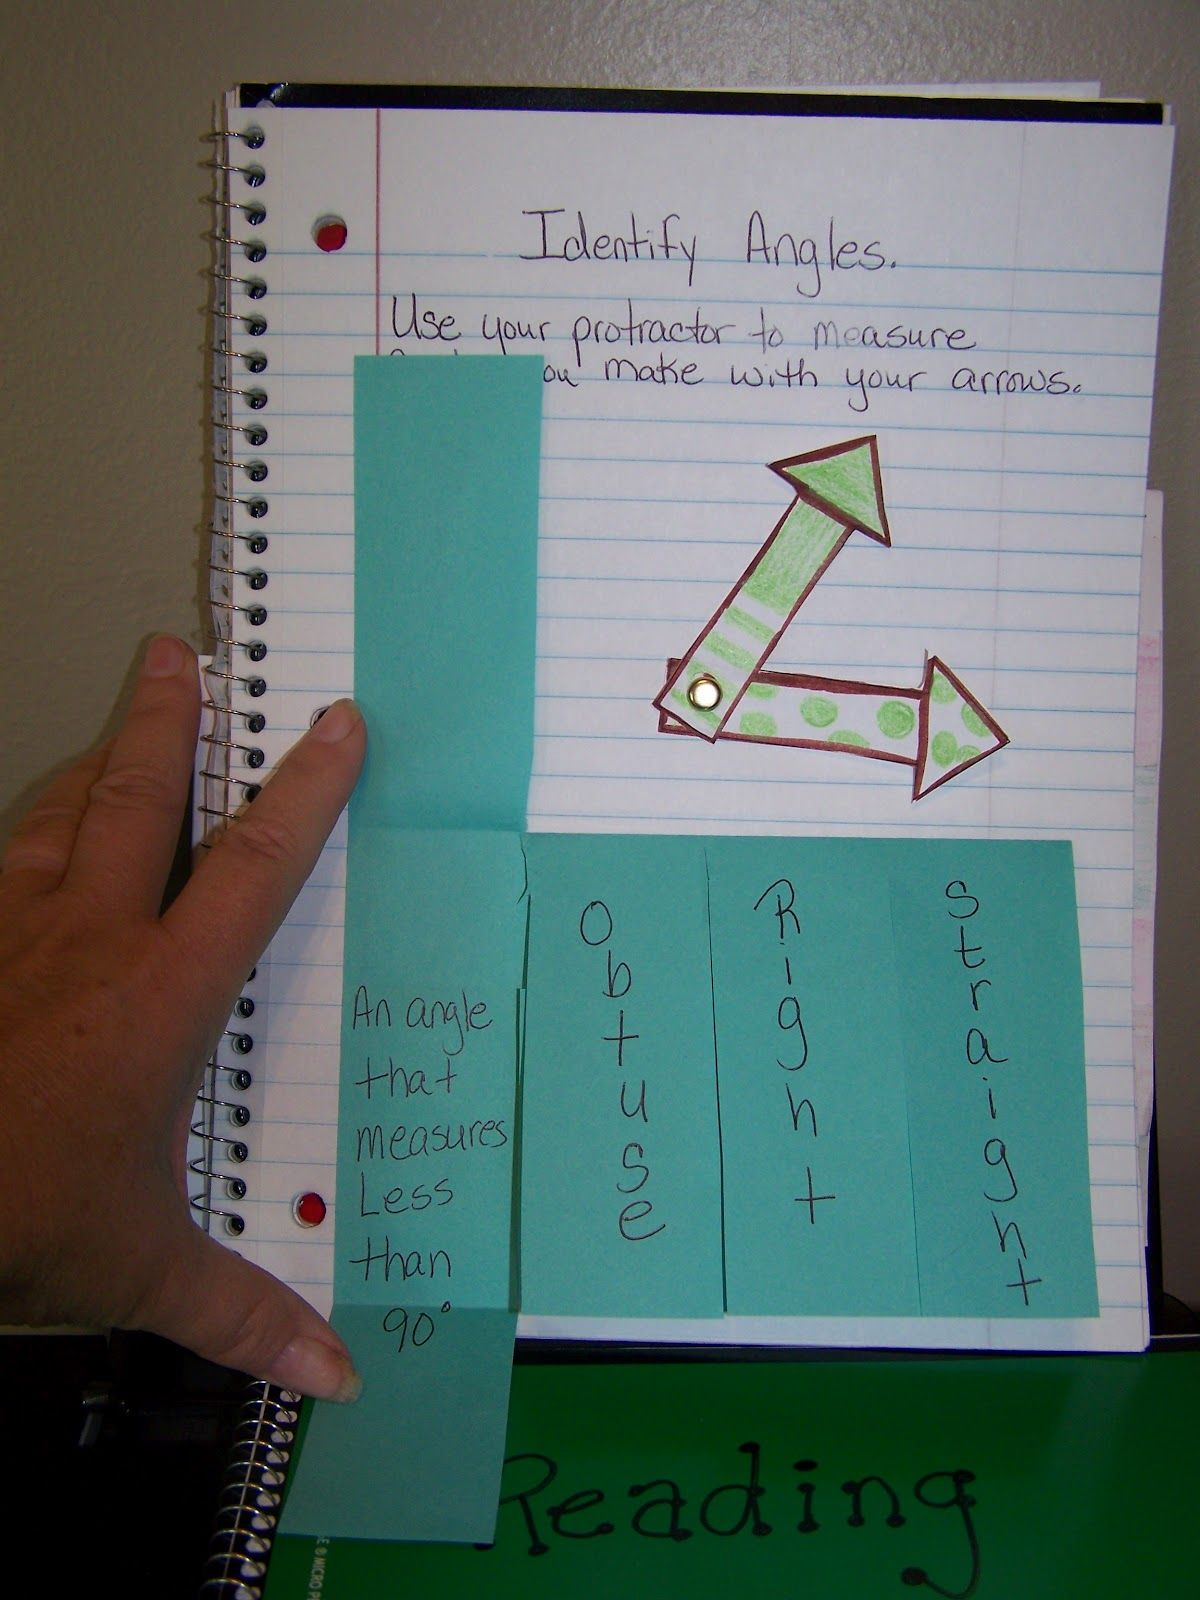 identify types of angles, draw and measure your angles